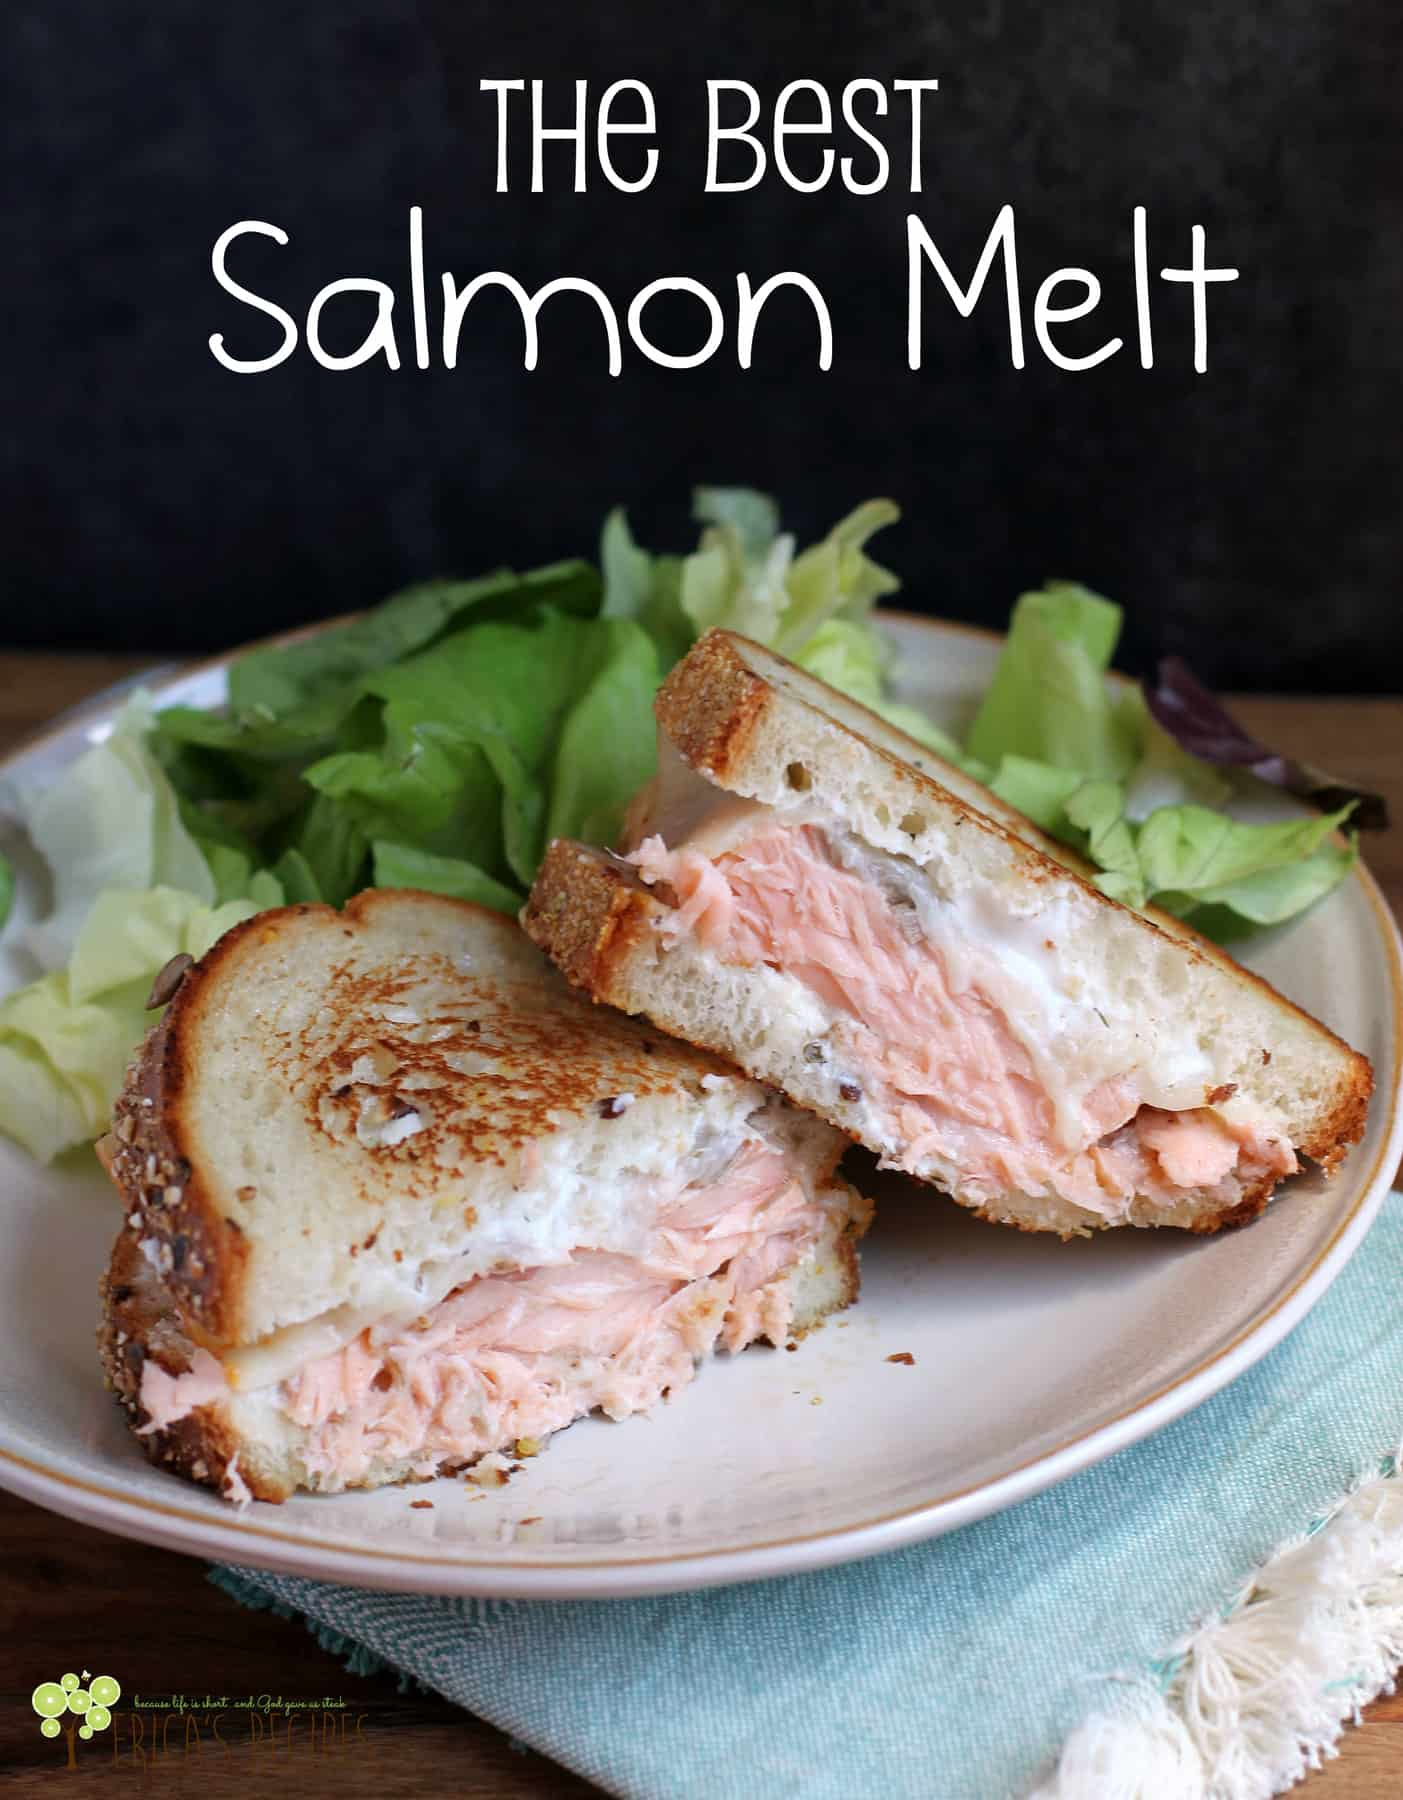 The Best Salmon Melt #recipe #salmon #food #seafood